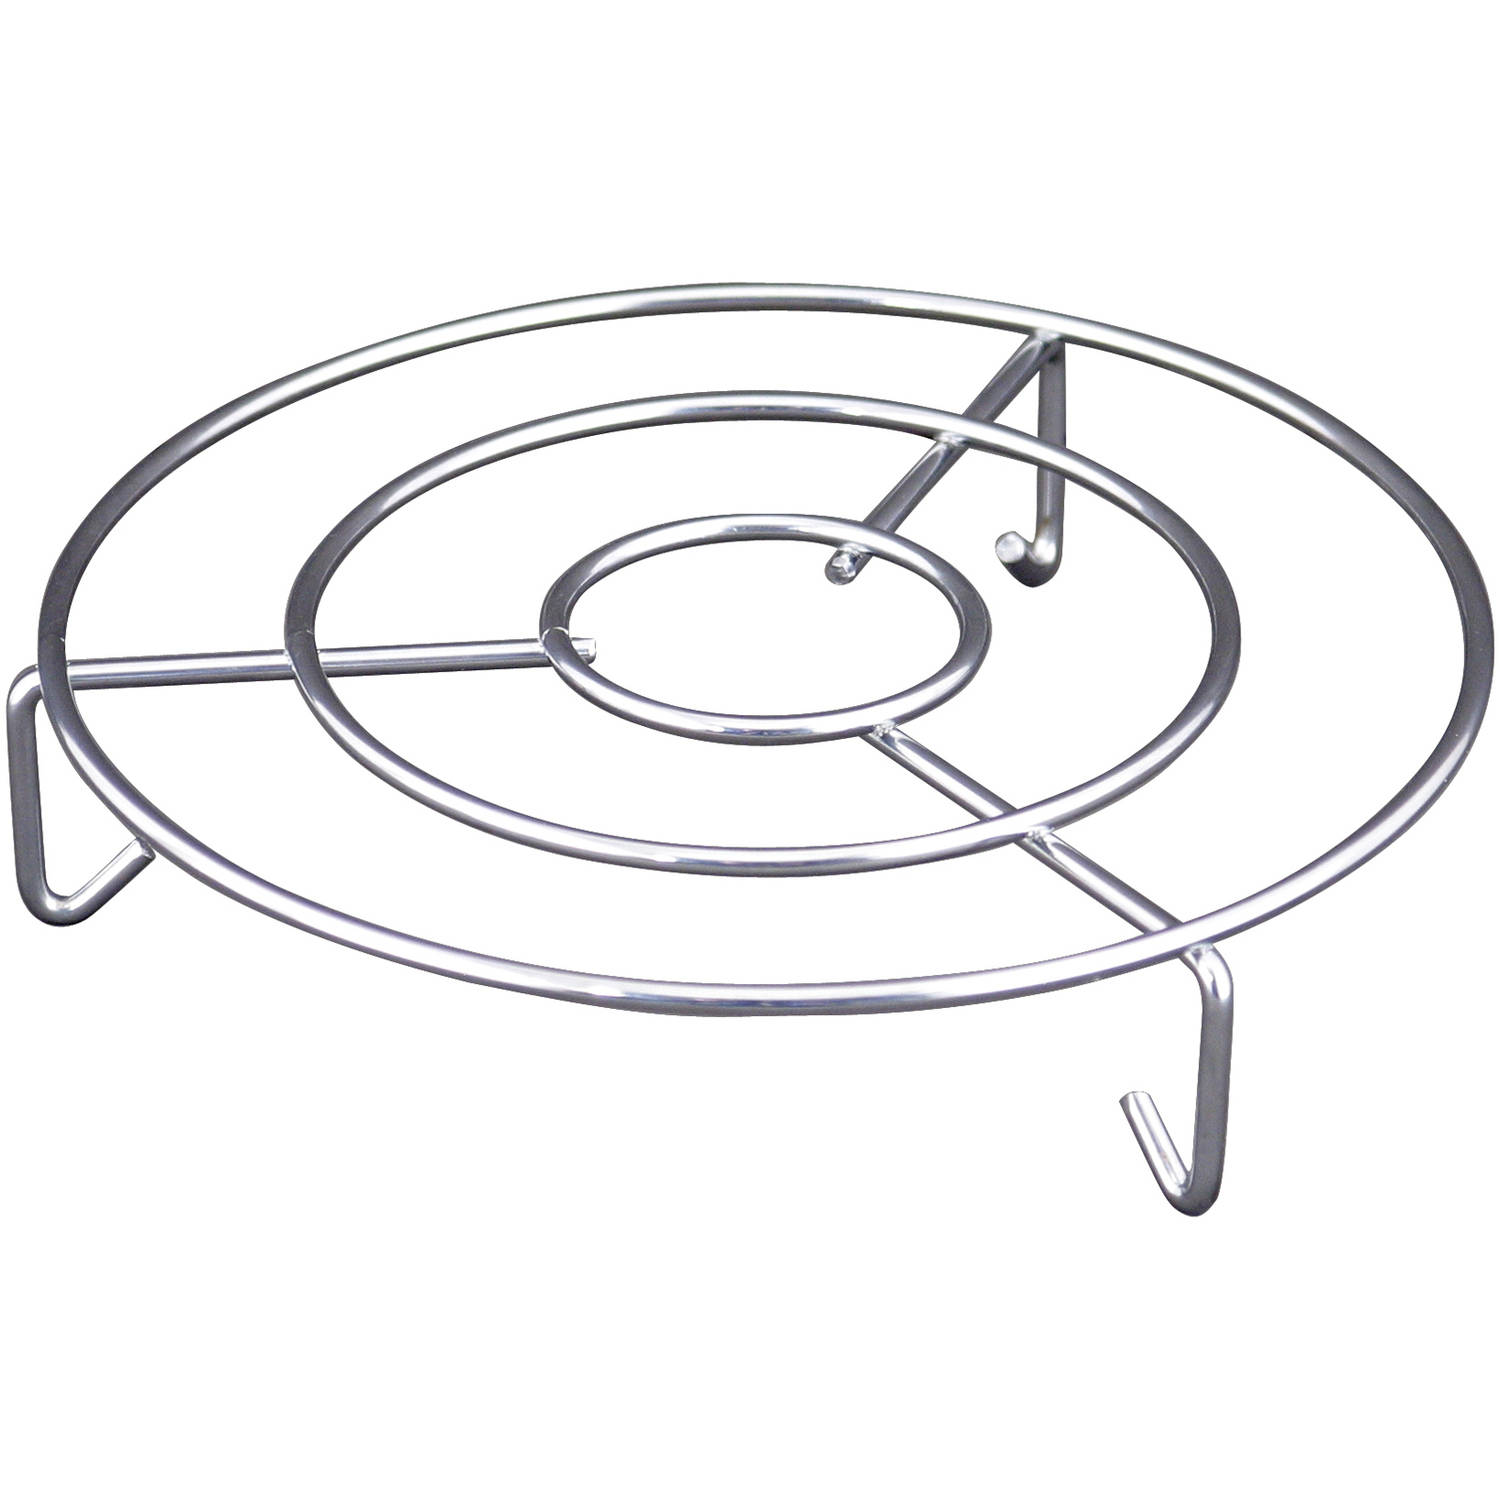 Camp Chef Nickel Plated Steel Dutch Oven Trivet by Camp Chef